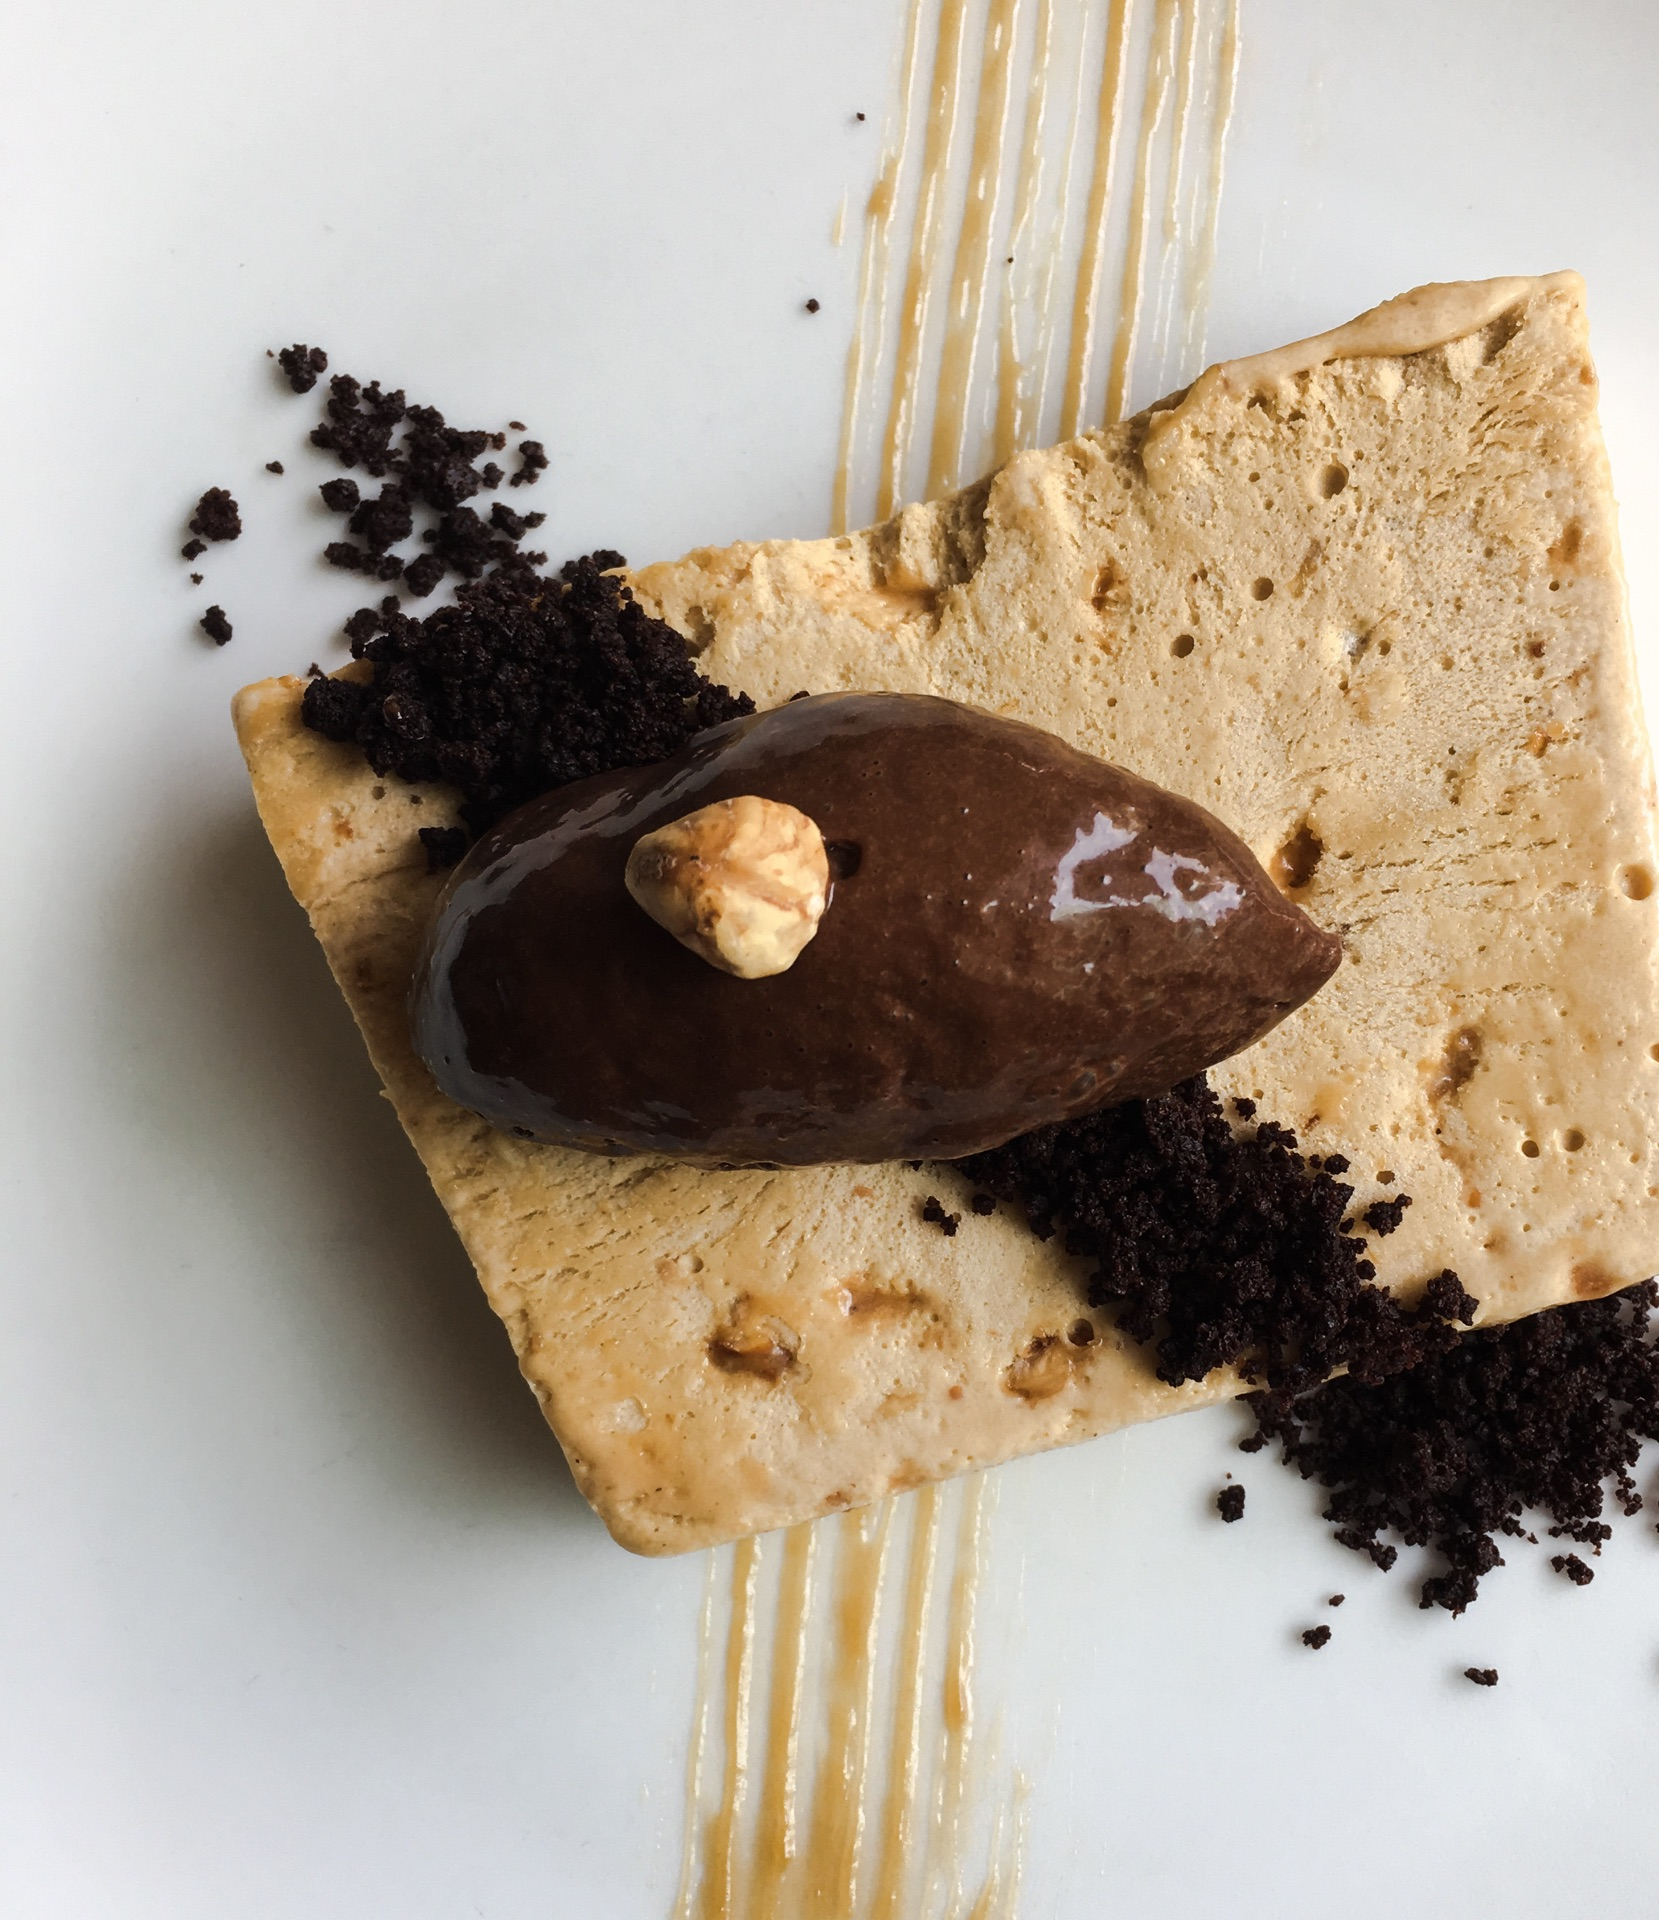 Hazelnut Chocolate Semifreddo